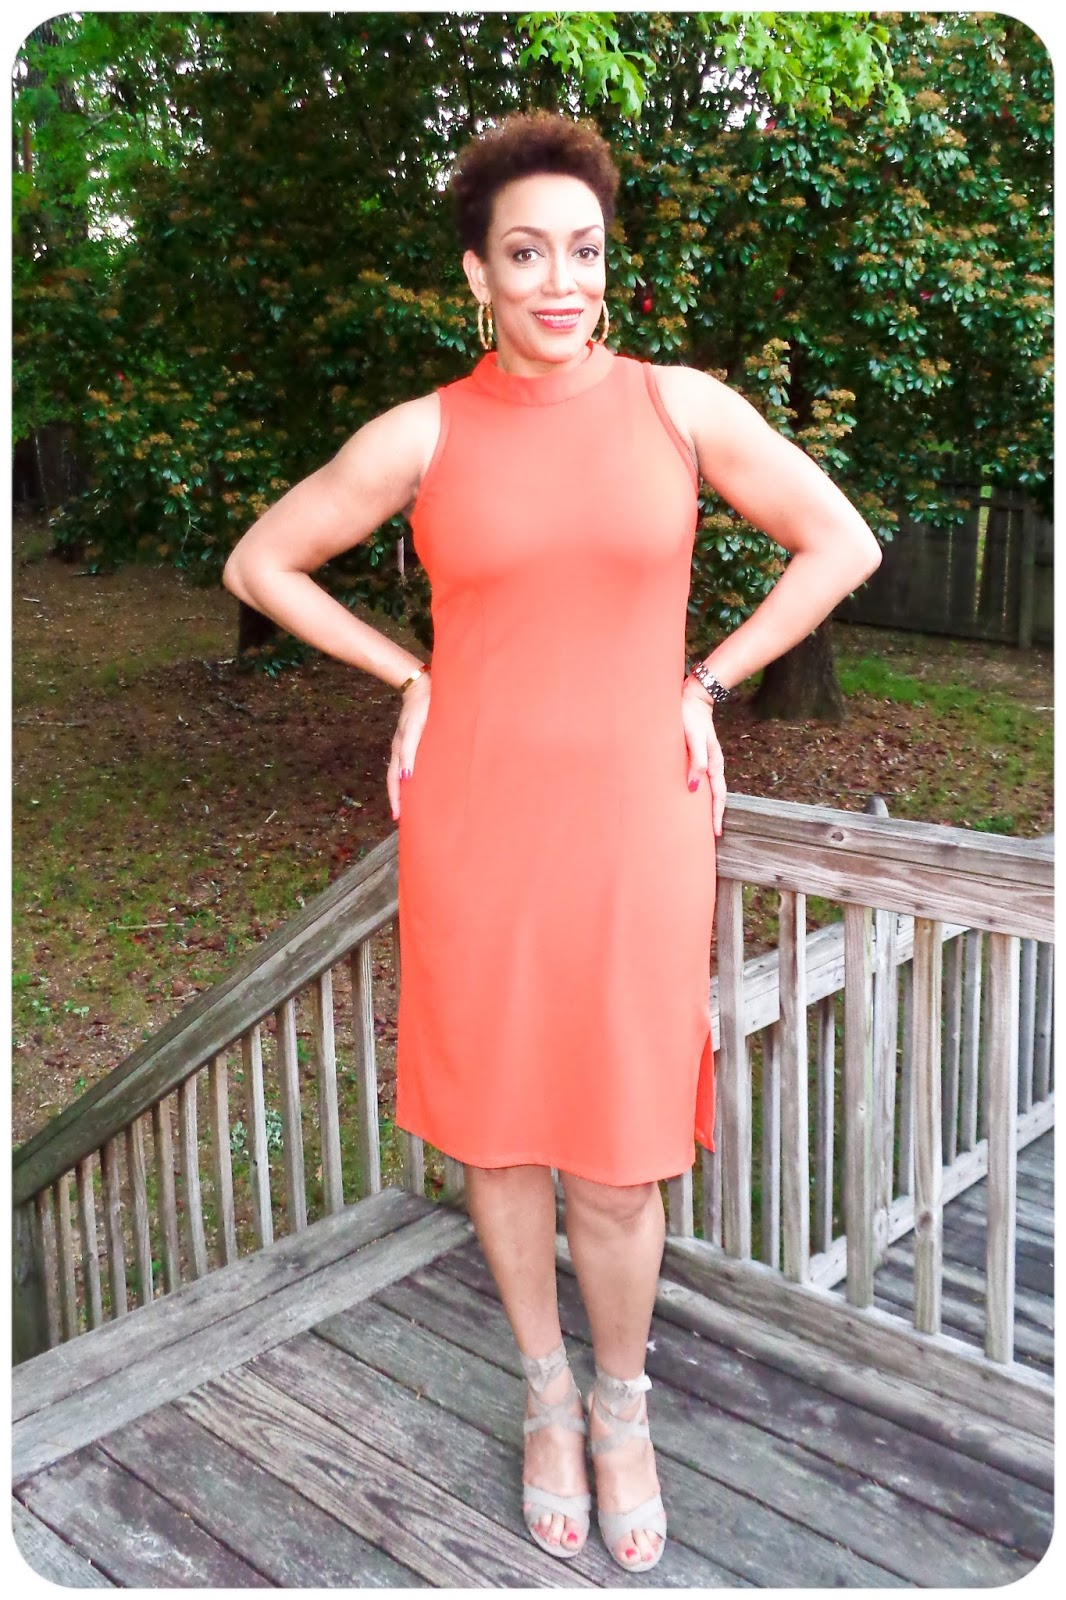 ea3bb3ff7d917 I ve collaborated with Kohl s to share with you my current favorite  shapewear pieces that are must haves for the most flattering look.